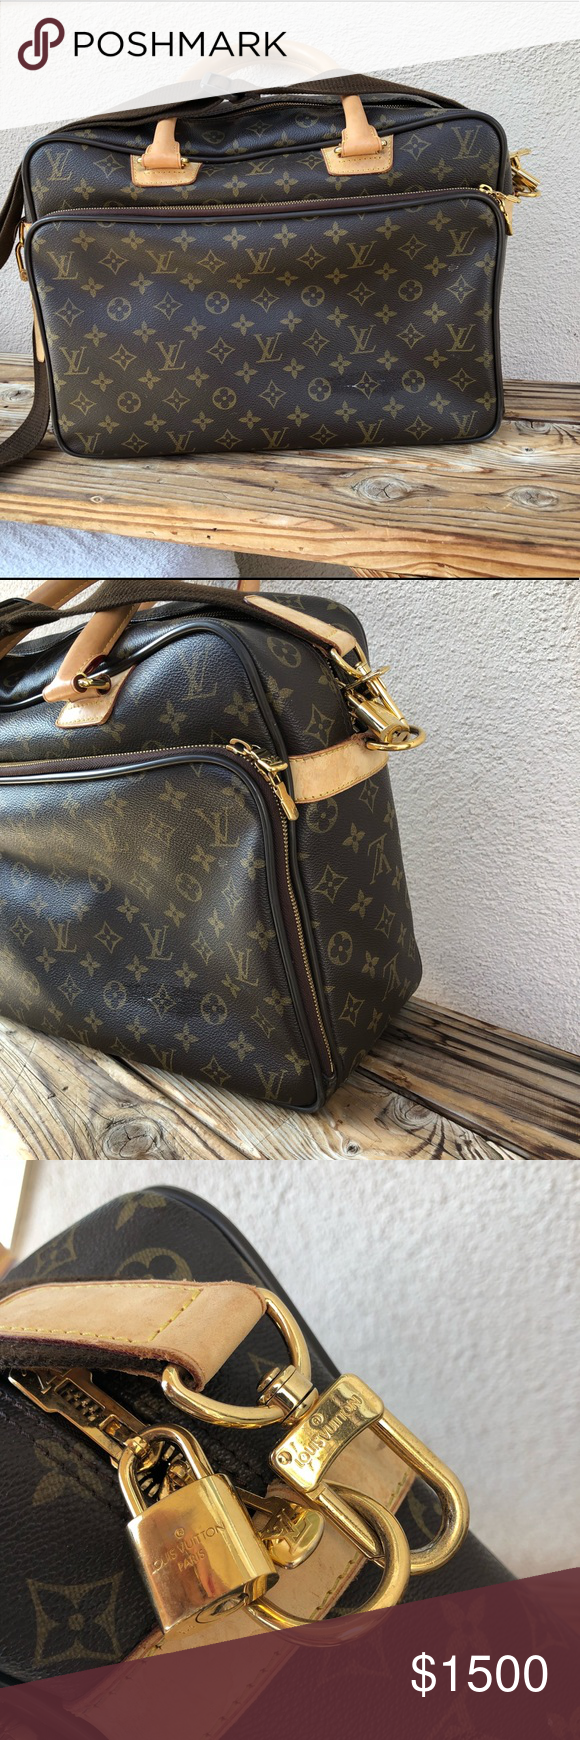 Louis Vuitton Bags Baby Bags. LV BUSINESS BAG DIAPER BAG I used this as a diaper  bag. Loved it 54cea50c23d44